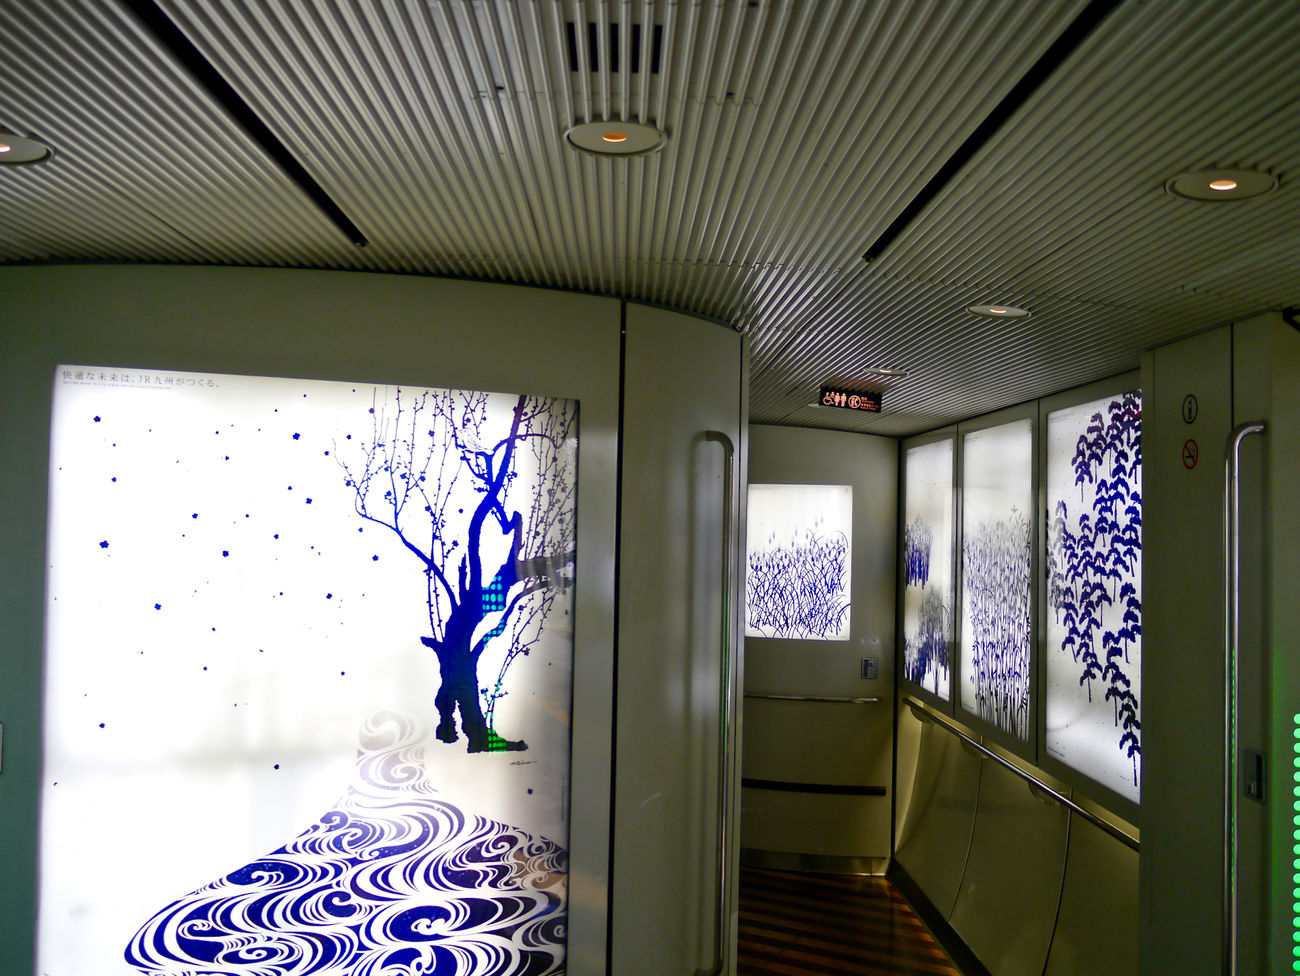 """Sonic 885 express passage / Photos(iMac) edit : An author of a black and white drawing(sumi-e) is """"Mitooka Eiji"""" who designed Kamome/Sonic express, Seven Stars In Kyushu at Kyushu Railway Company. A remake redesign made the """"rimpa"""" style Mitooka arrange. Ceiling Common Space Creative Light And Shadow Illuminated Inside The Train Interior Design Lighting Equipment Limited Express Mitooka Eiji Passage SONIC 885 Sumi-e 墨絵 水戸岡鋭治 琳派"""